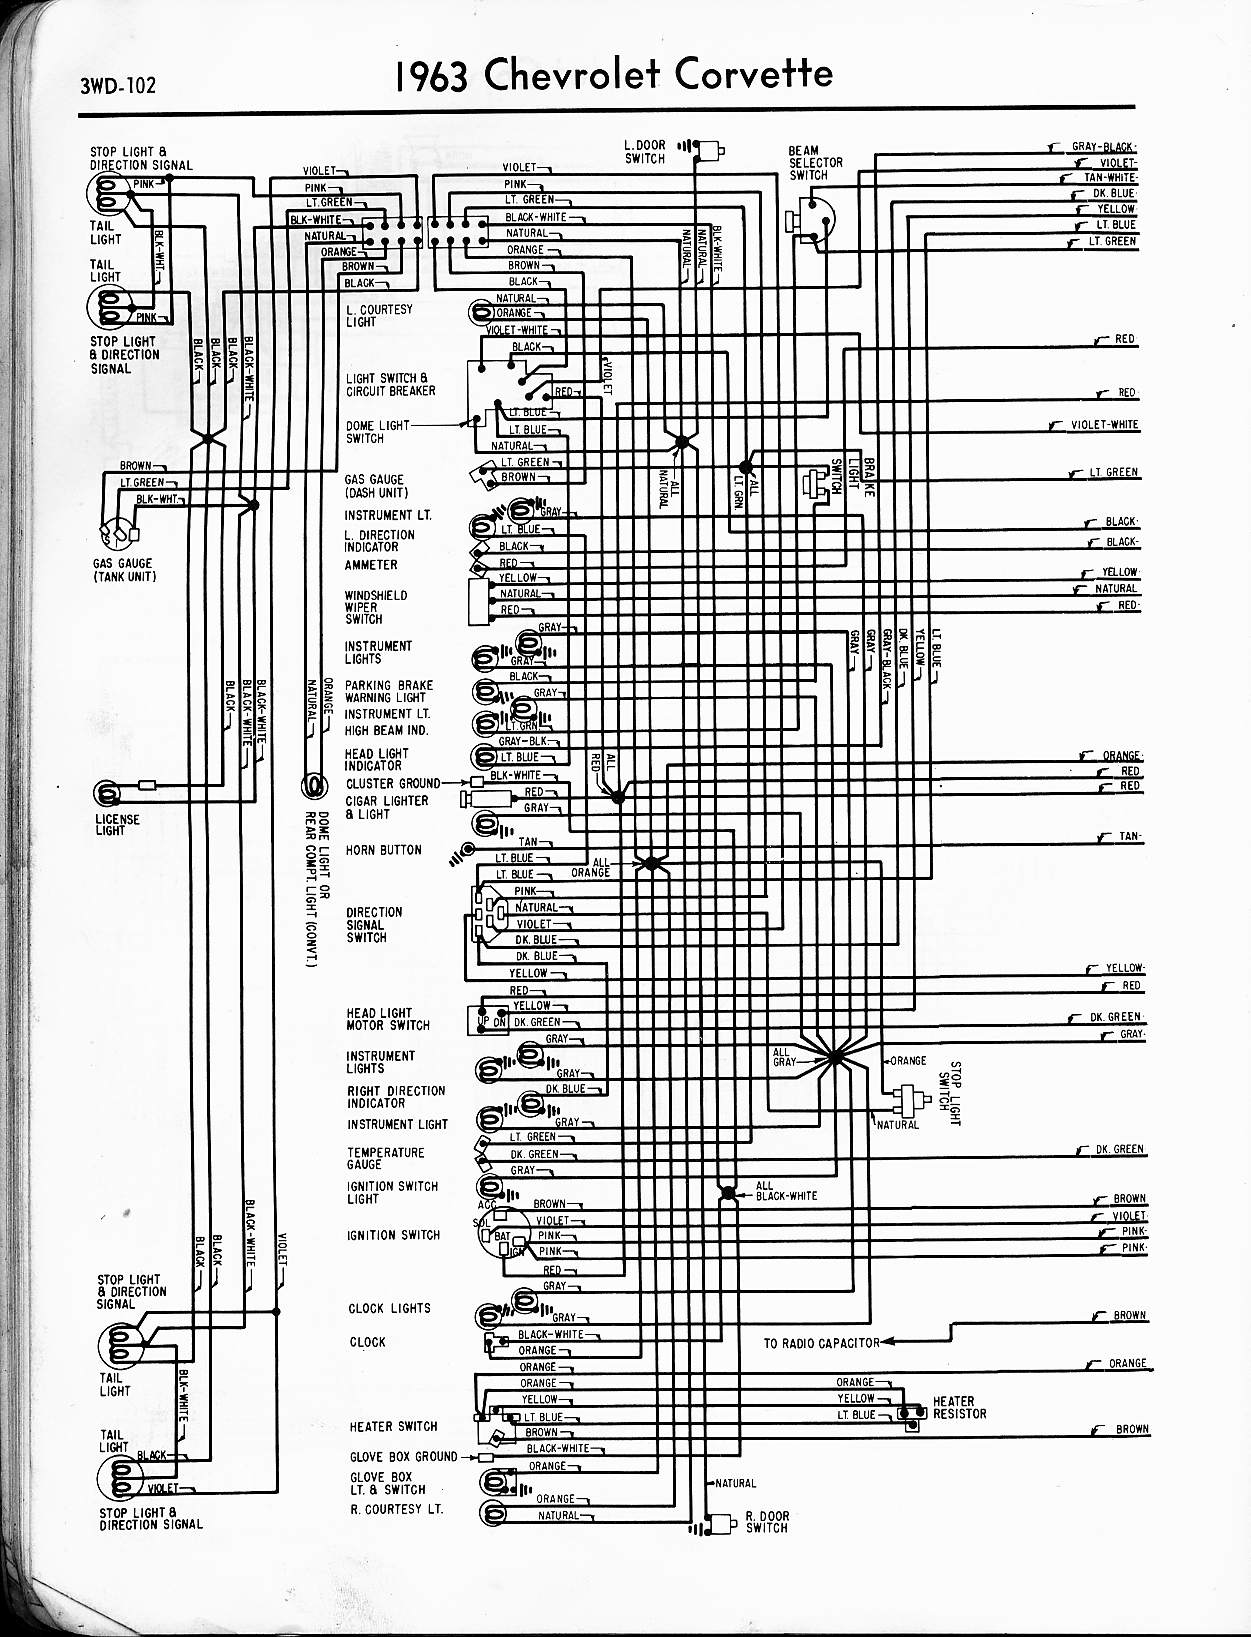 63 Corvette Wiring Diagram Opinions About Diagrams 74 Nova